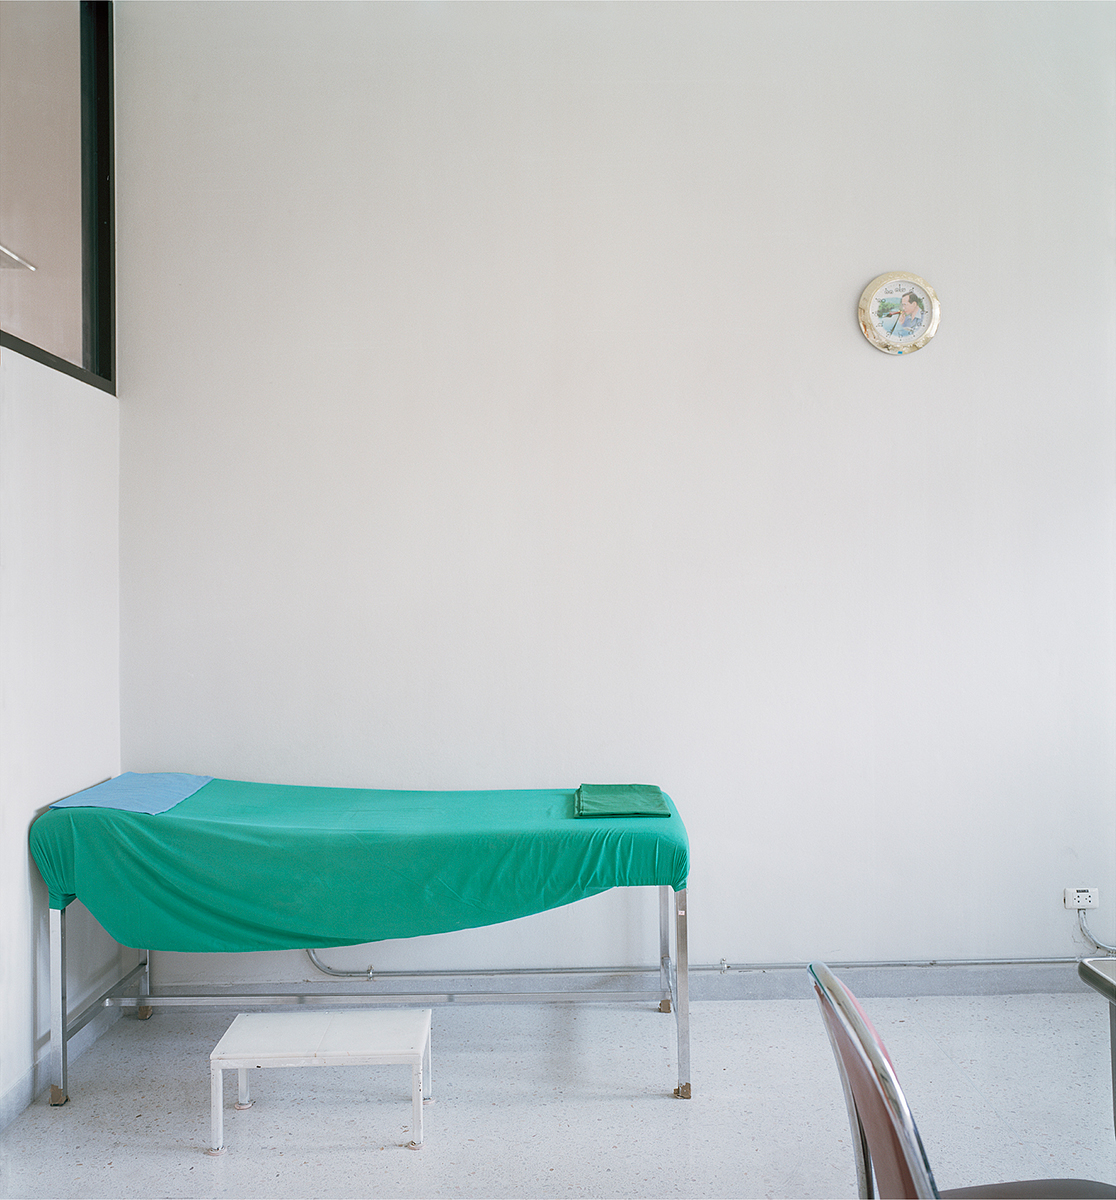 Bed , The Prosthesis Foundation of HRH The Princess Mother, Chiang Mai, Thailand